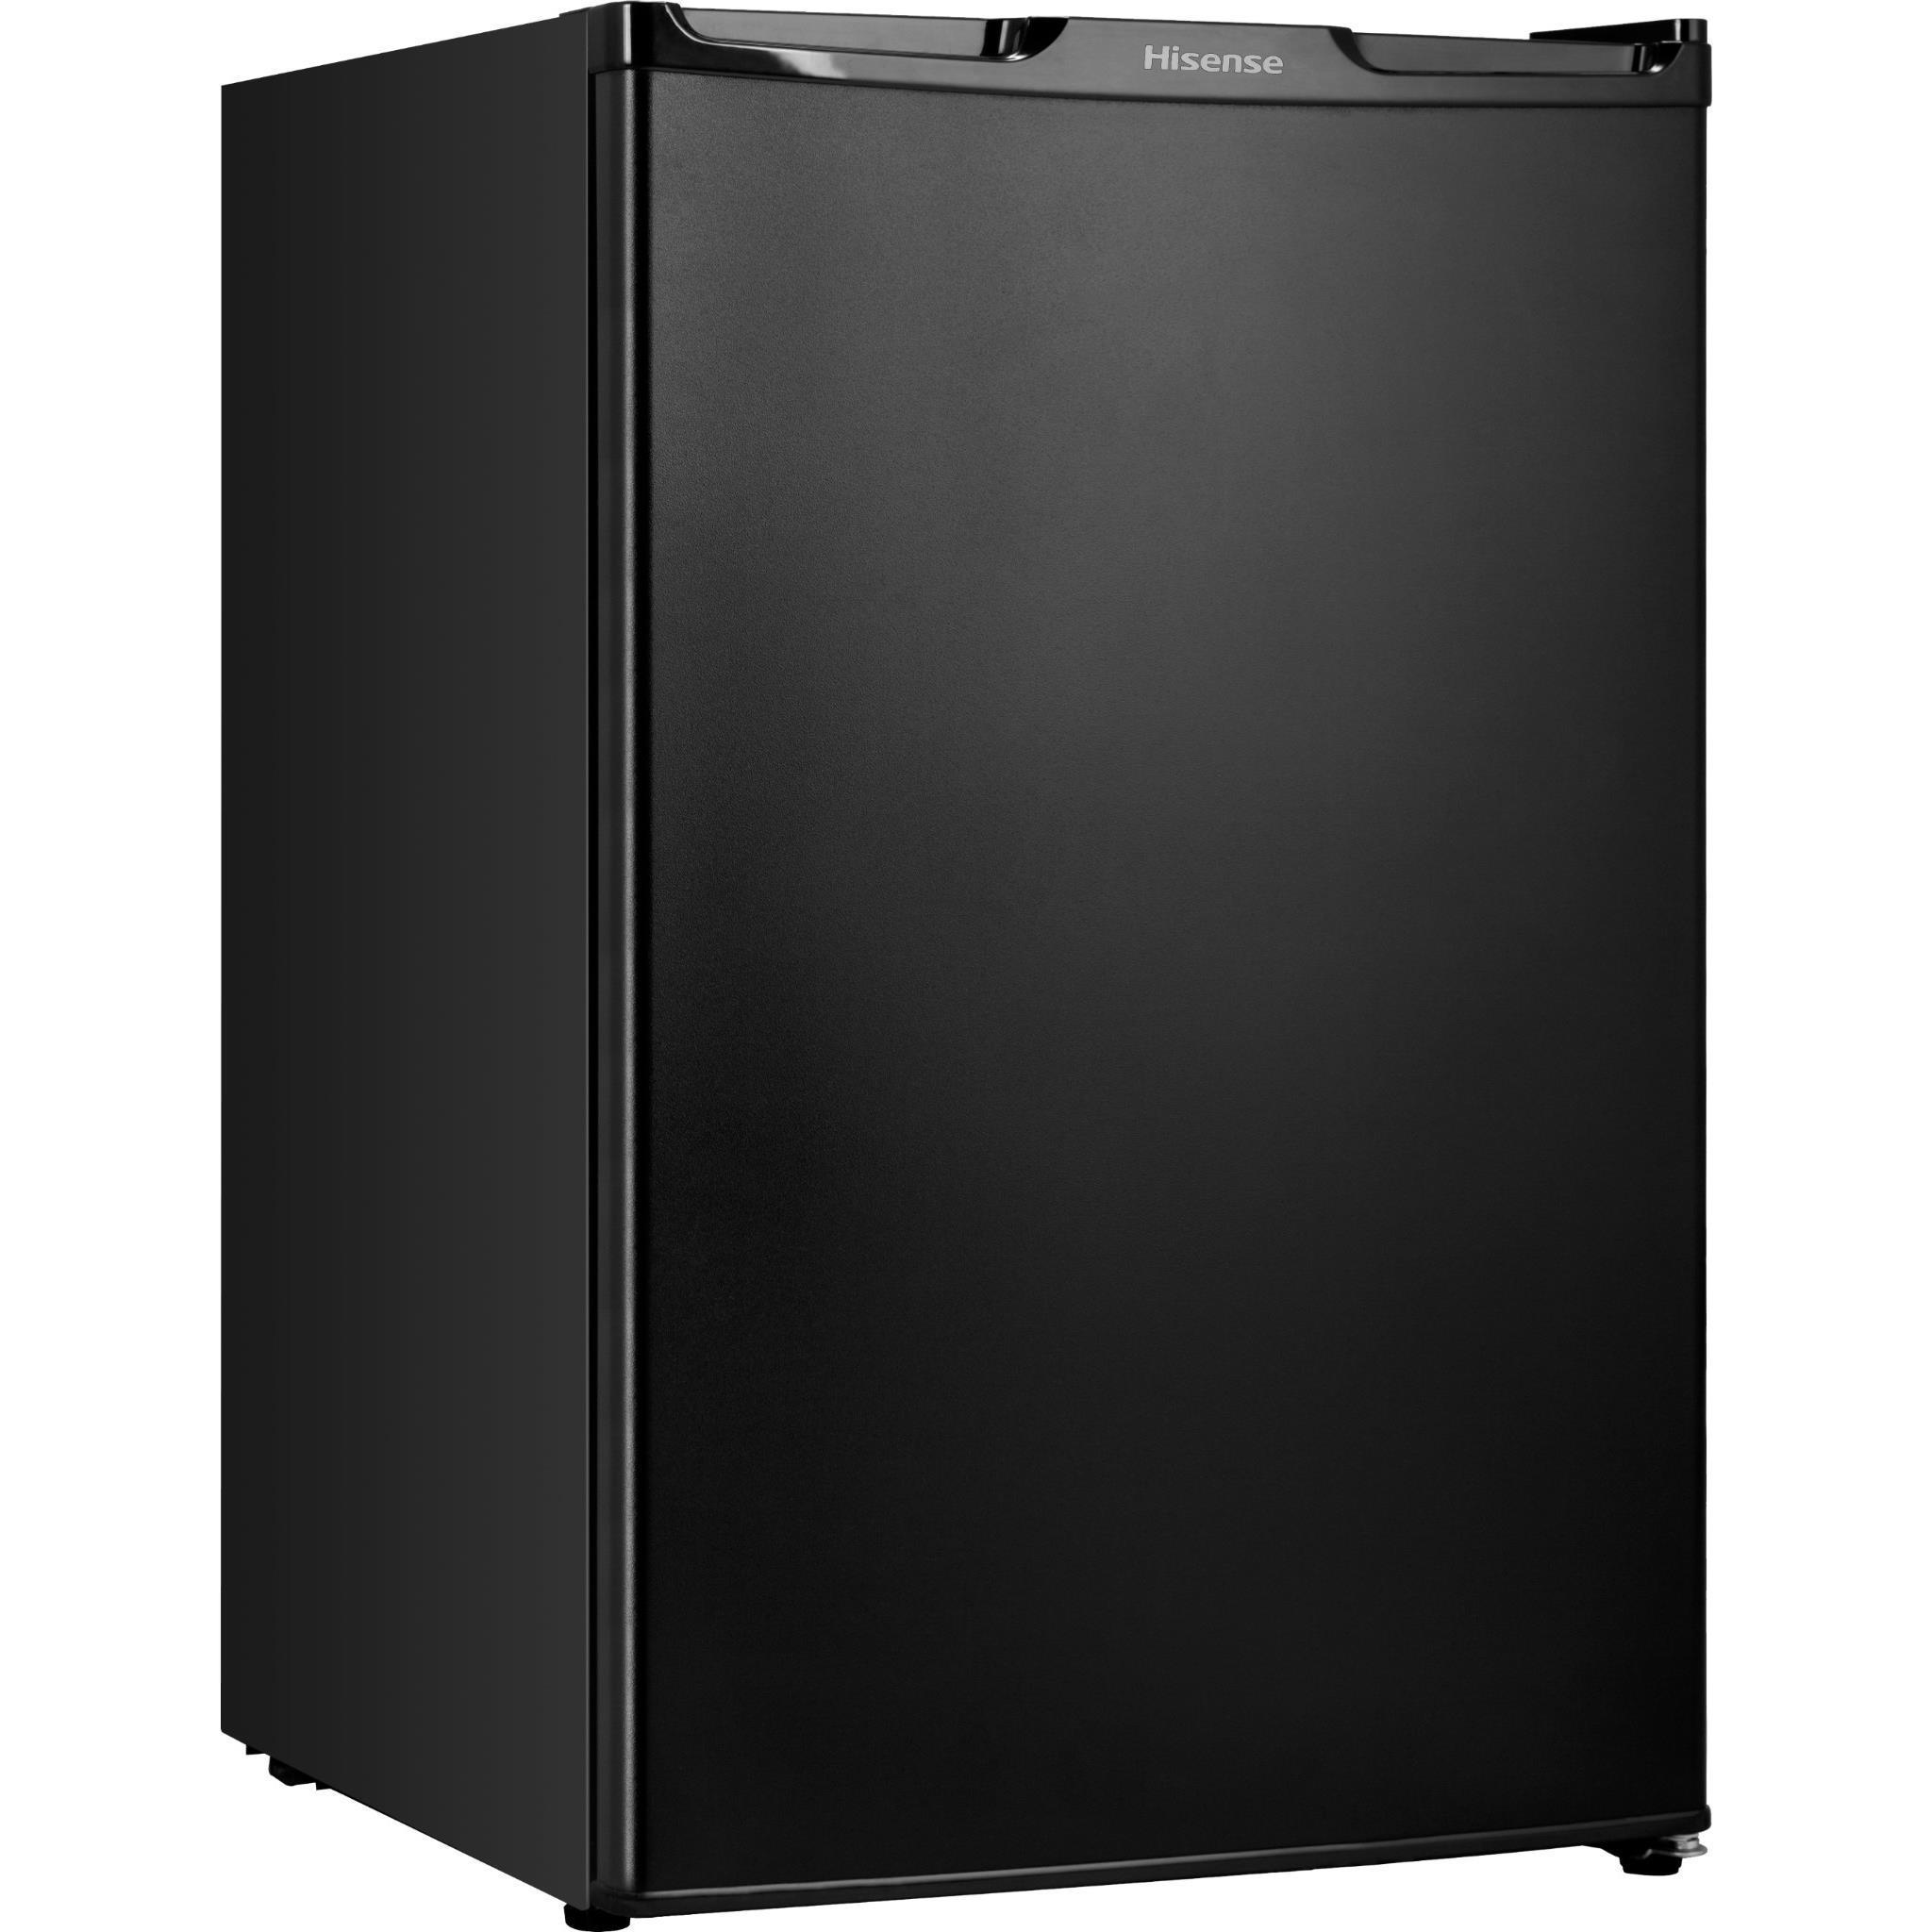 Hisense HR6BF121B 120L Bar Fridge (Black)